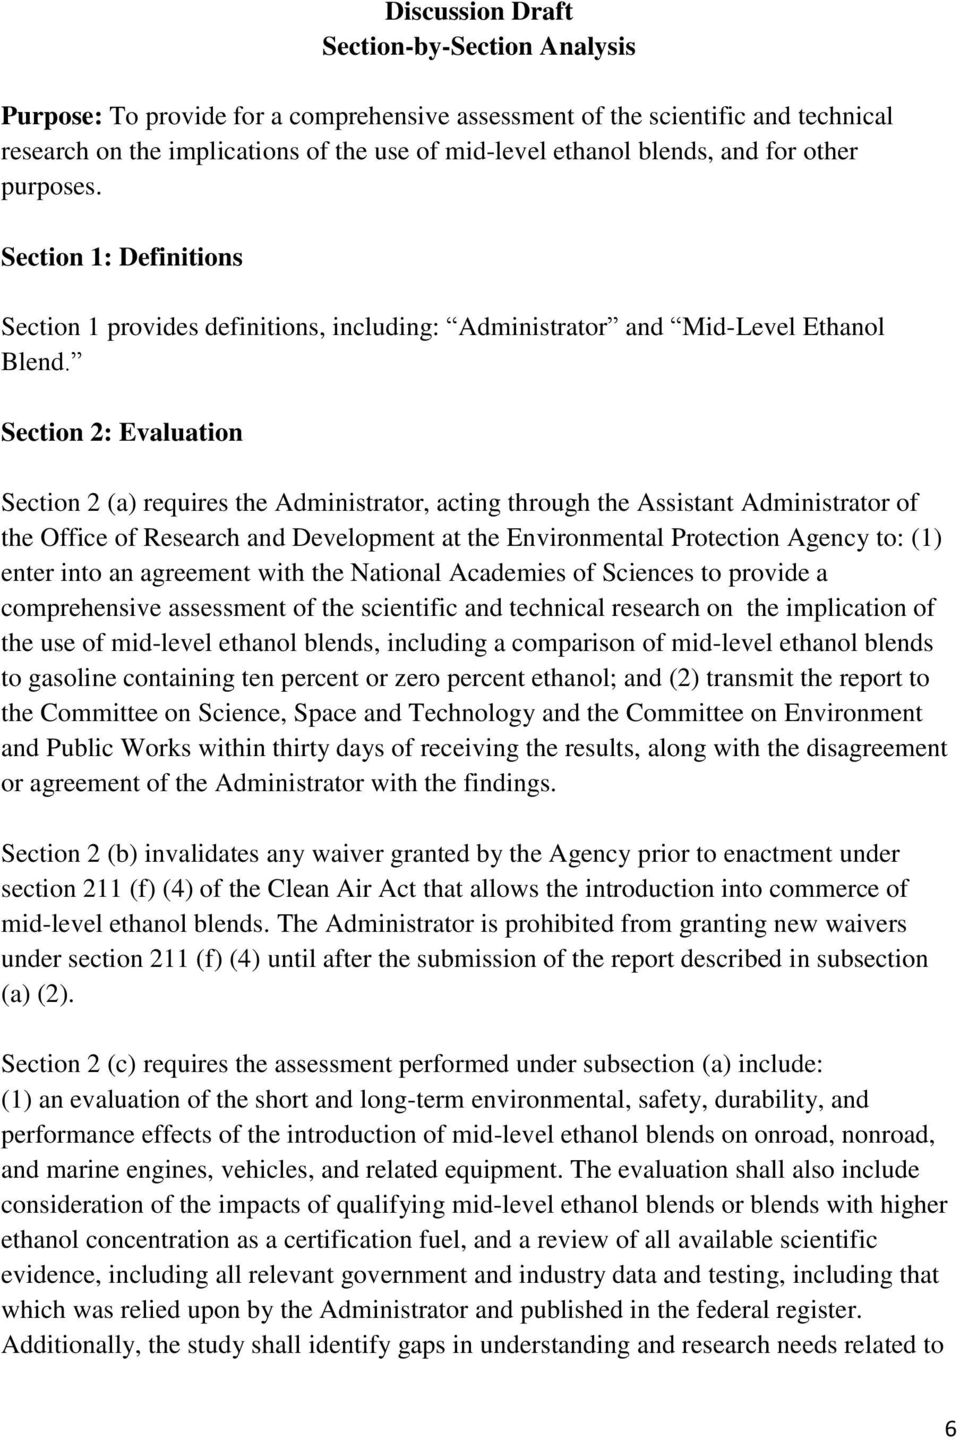 Section 2: Evaluation Section 2 (a) requires the Administrator, acting through the Assistant Administrator of the Office of Research and Development at the Environmental Protection Agency to: (1)